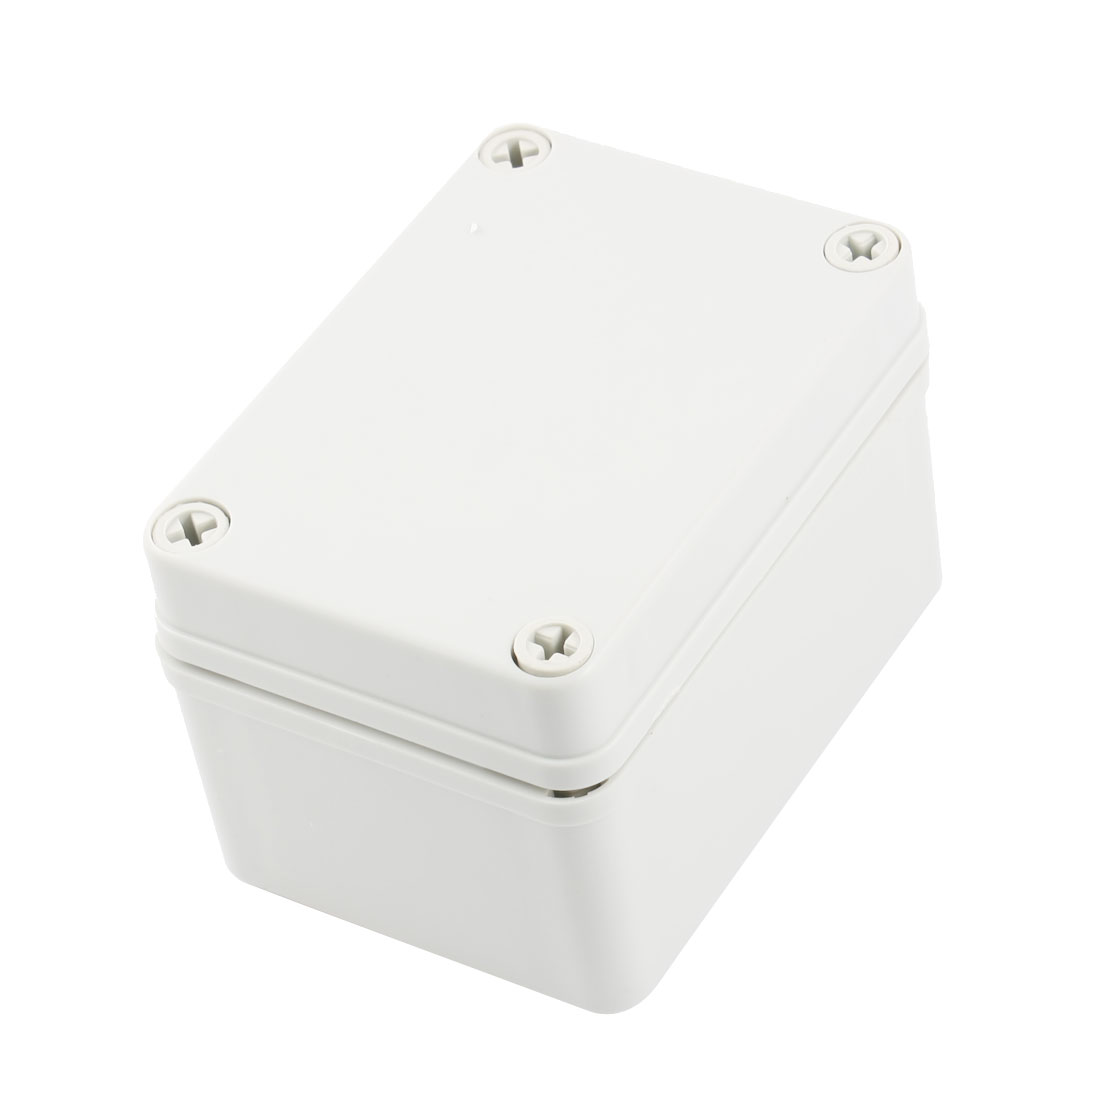 110mm x 80mm x 70mm Dustproof IP65 Plastic Sealed Cable Connect Power Protector Junction Box Enclose Case